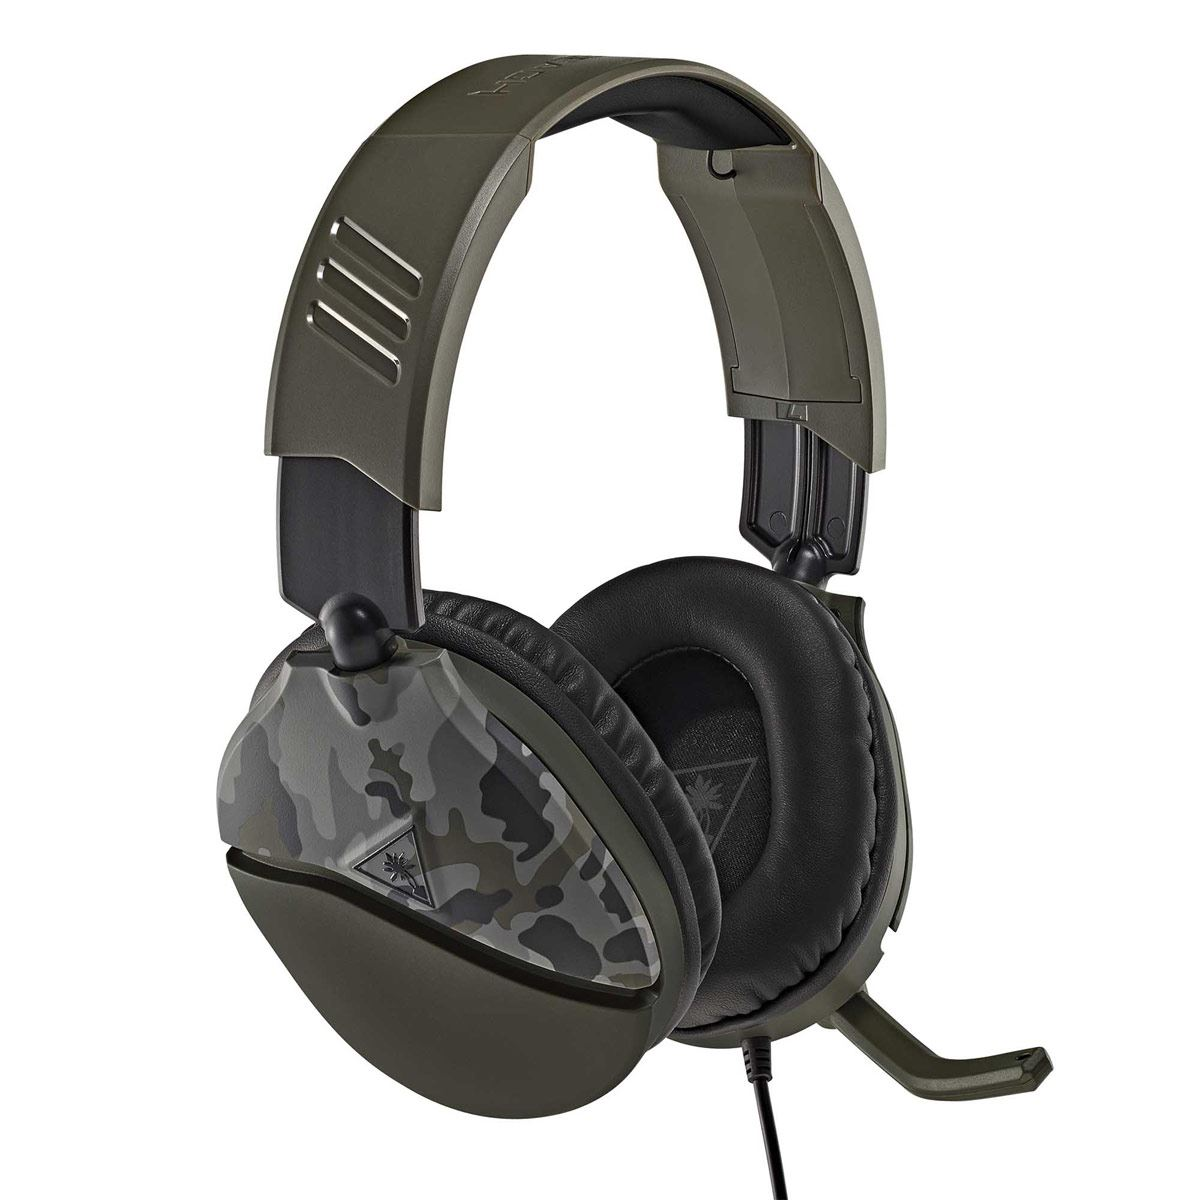 Headset Turtle Beach Recon 70 Camo